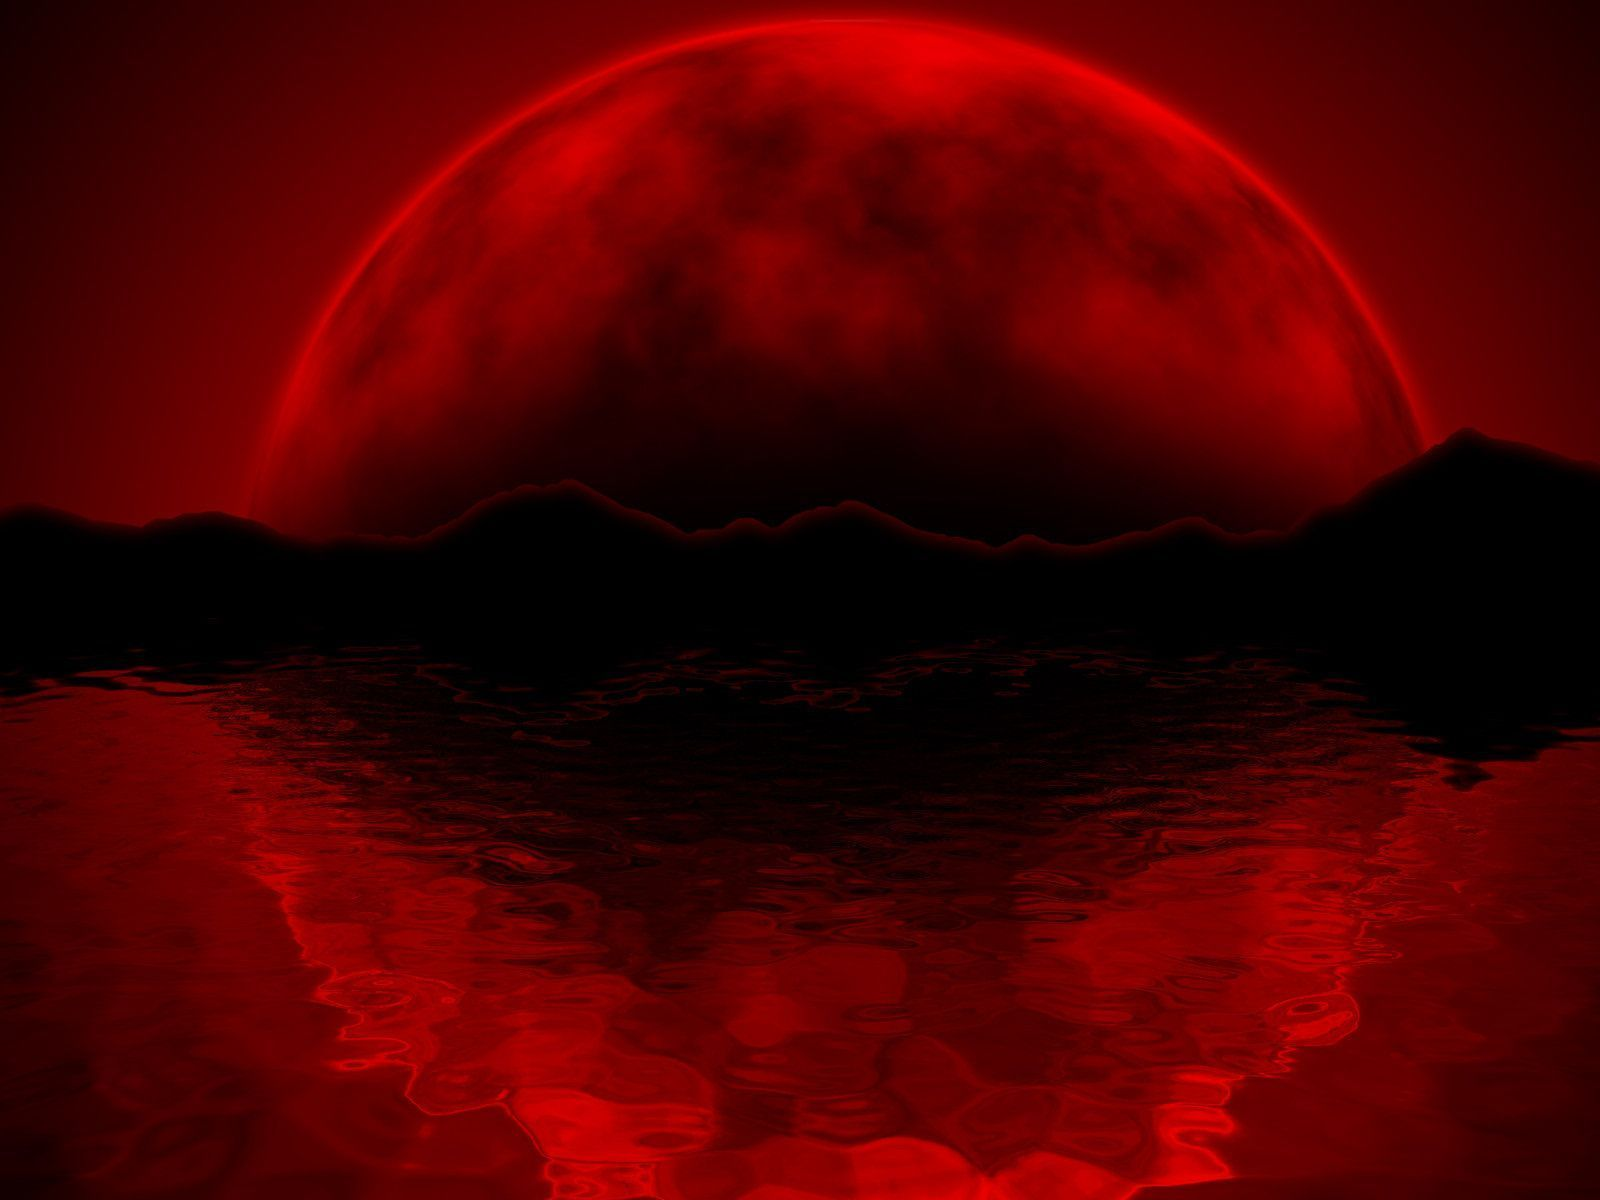 blood wallpaper, 1920x1080 moon wallpaper